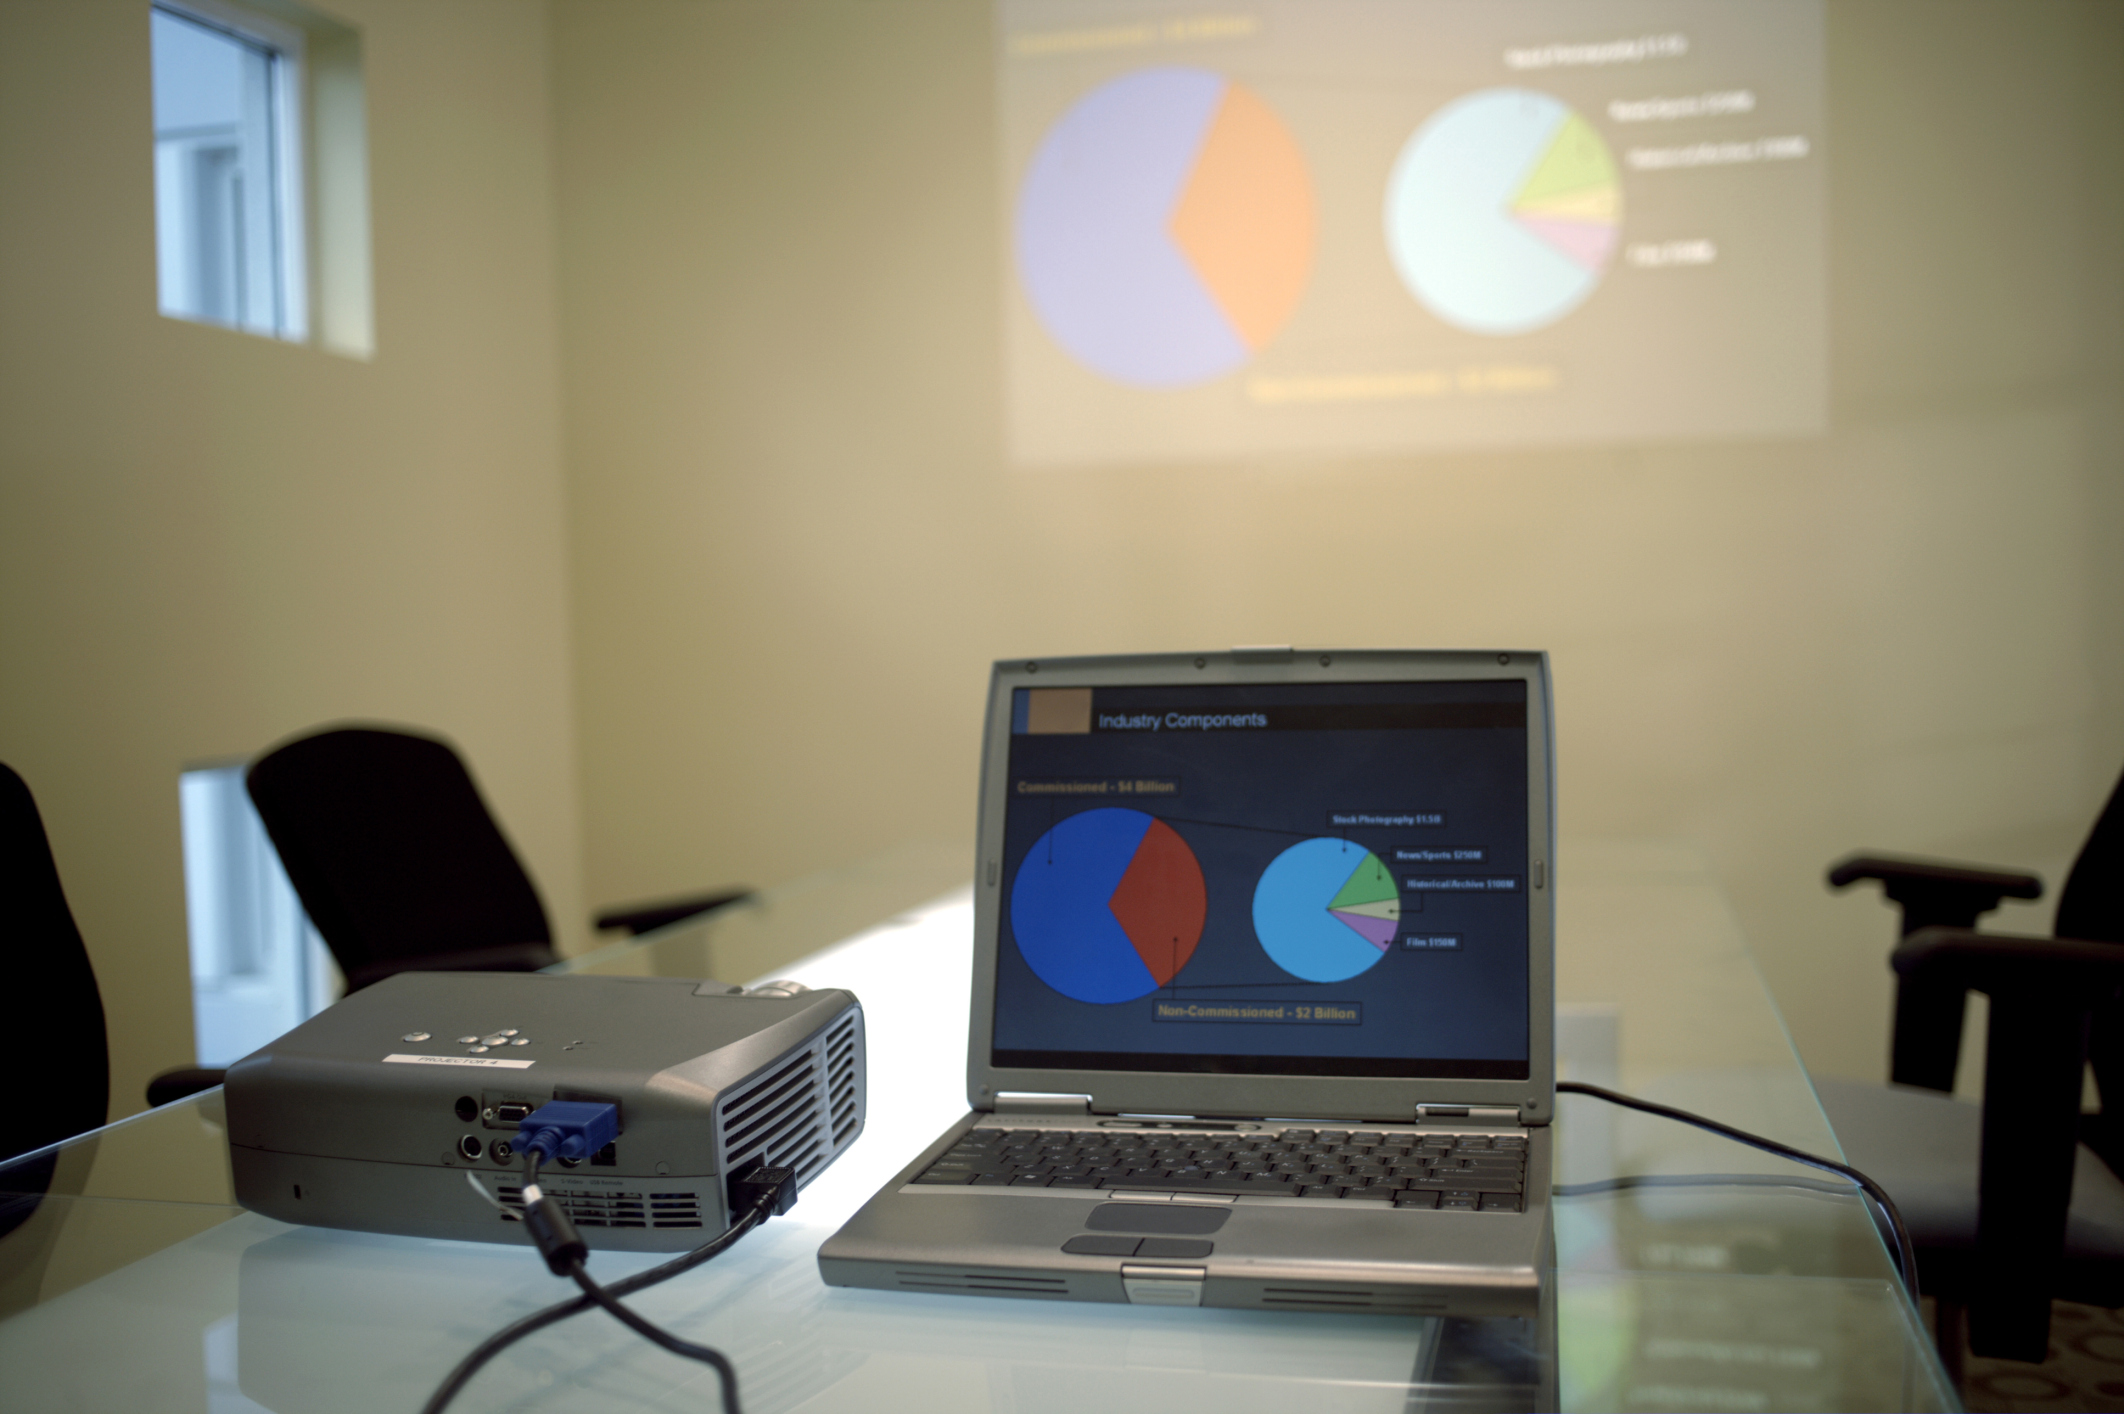 Why Does My Projector Screen Look Yellow? | Bizfluent